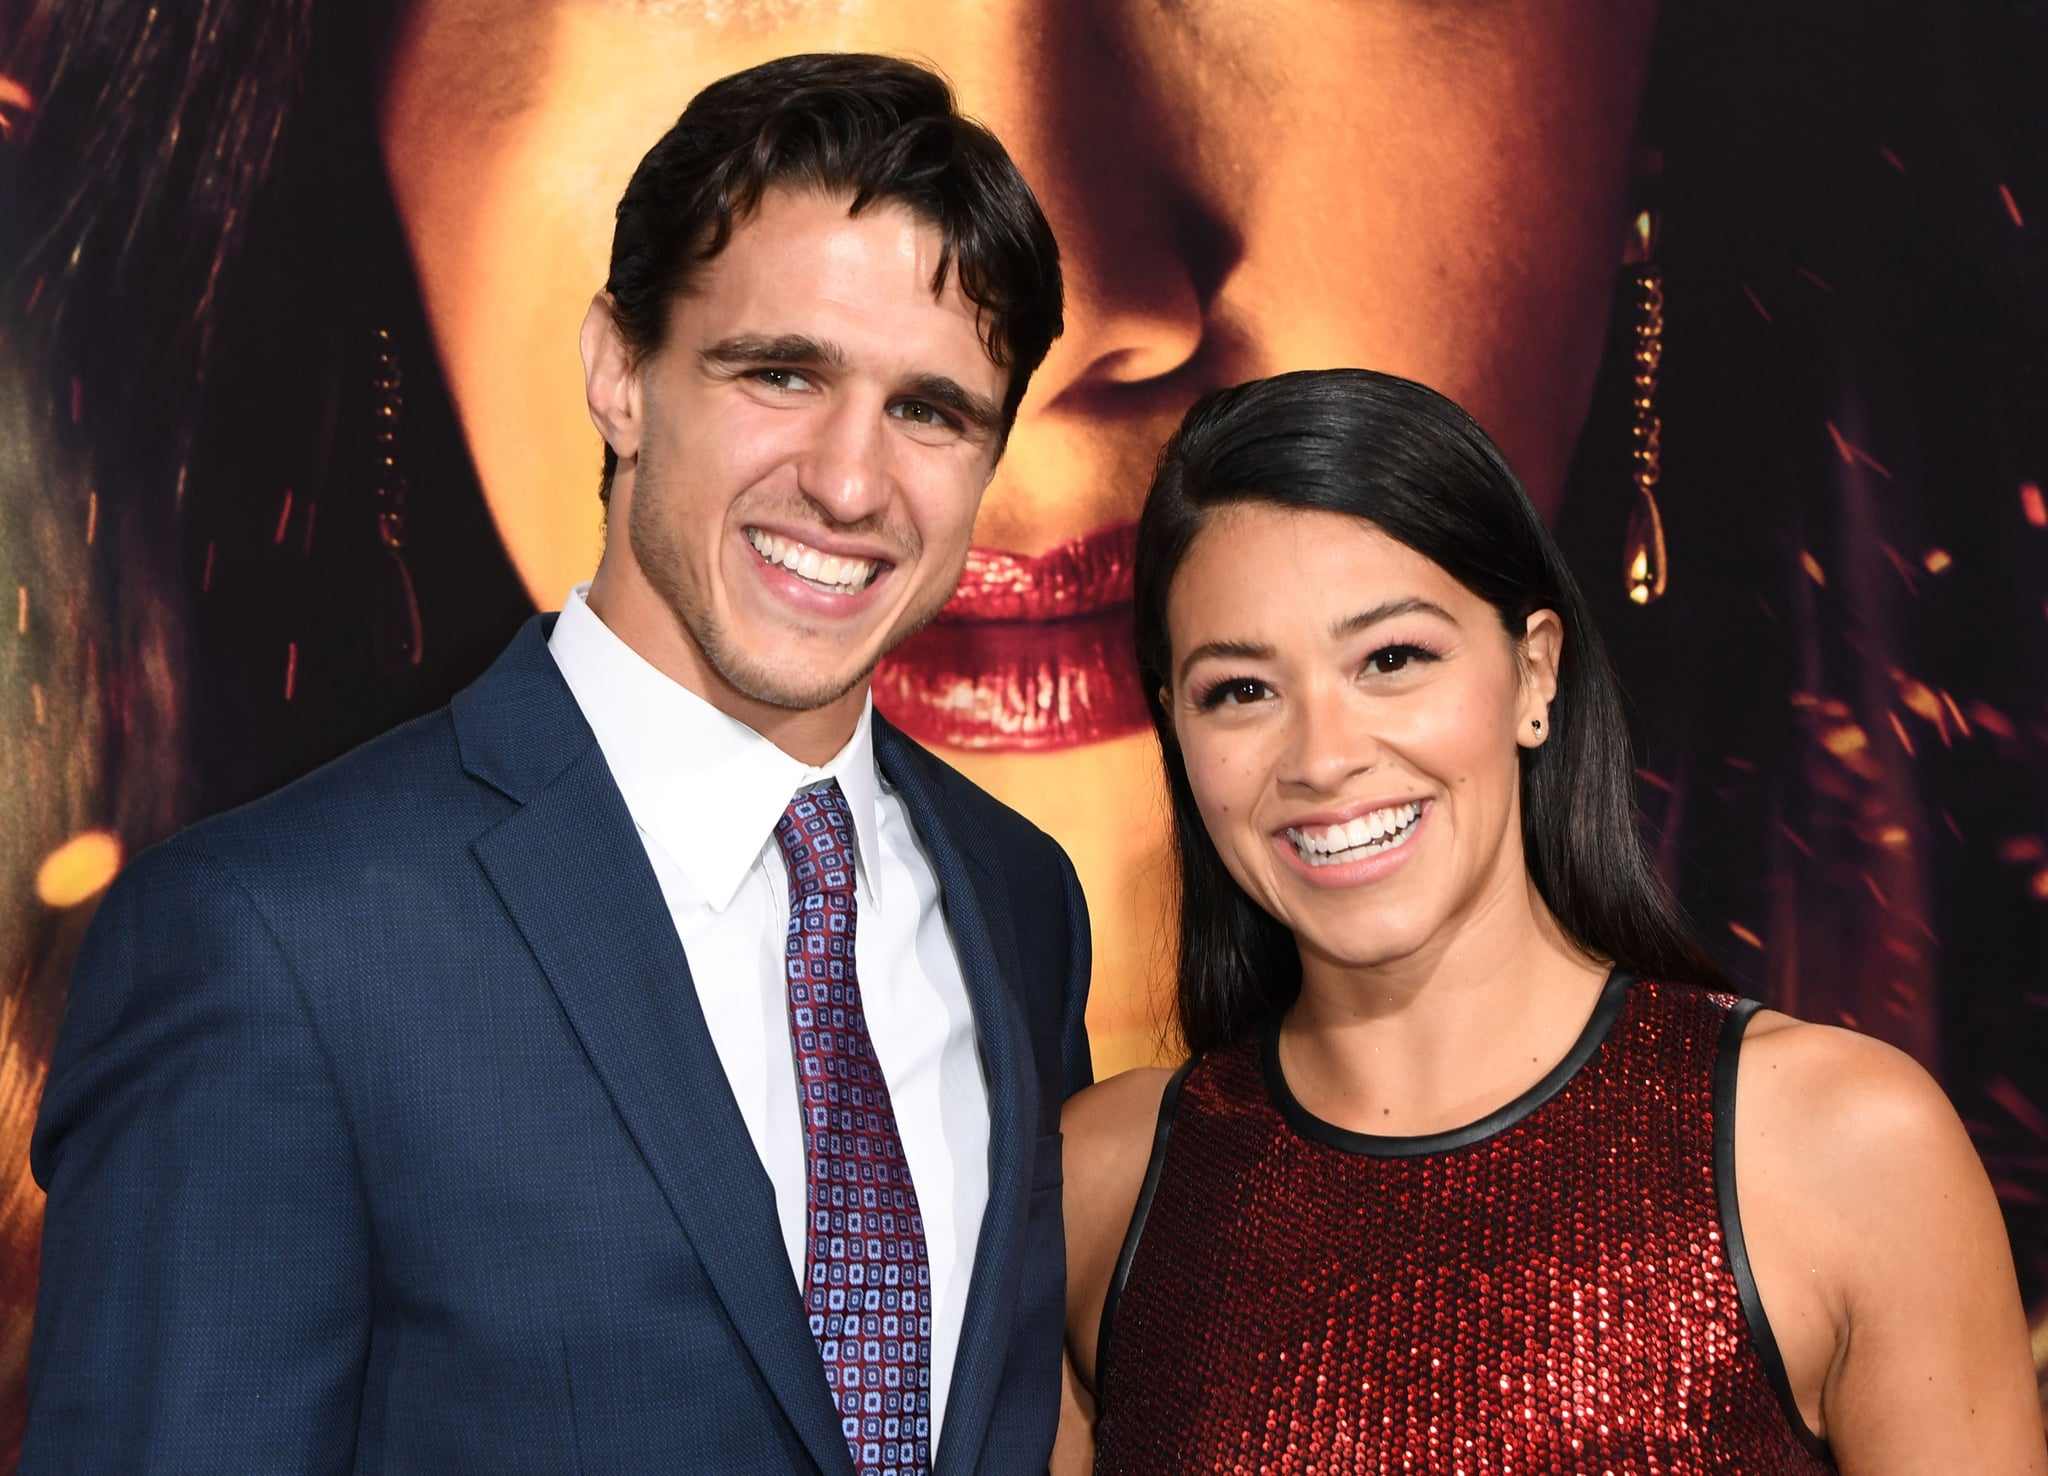 Actress Gina Rodriguez and fiance Joe Locicero arrive for the premiere of Columbia Pictures